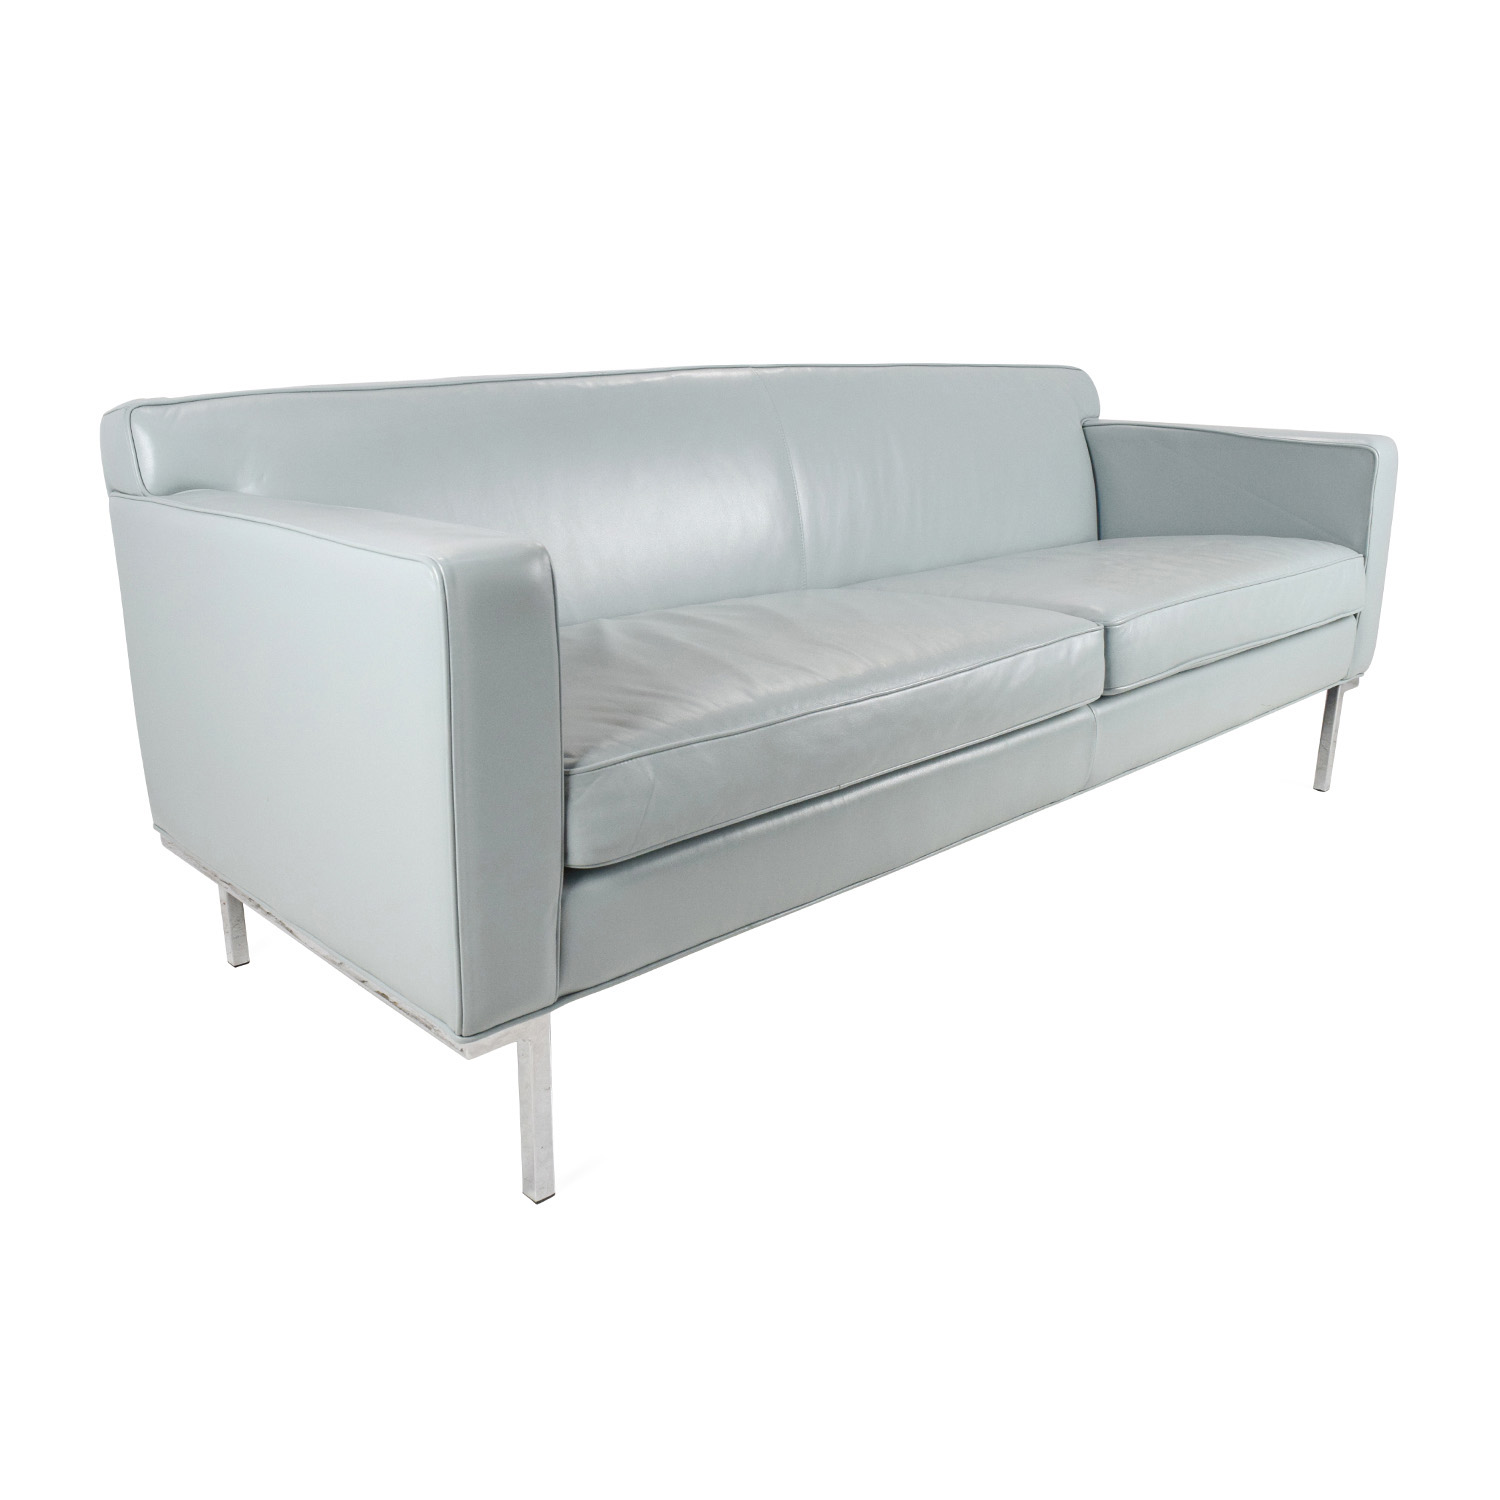 dwr theatre sofa review wall bed conversions 70 off design within reach theater